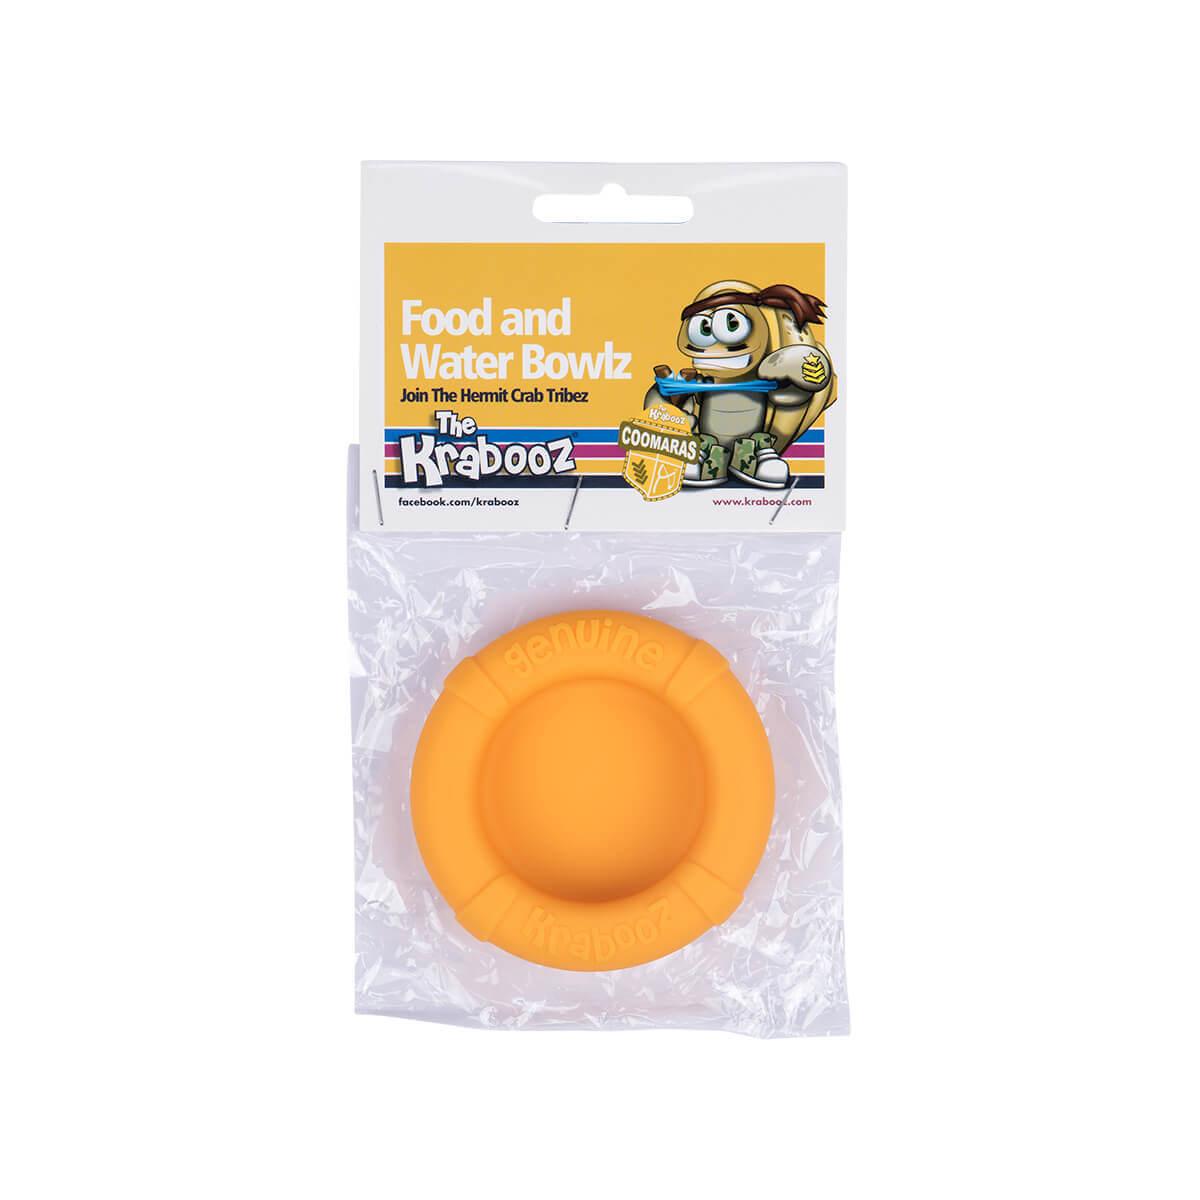 Krabooz Food & Water Bowlz